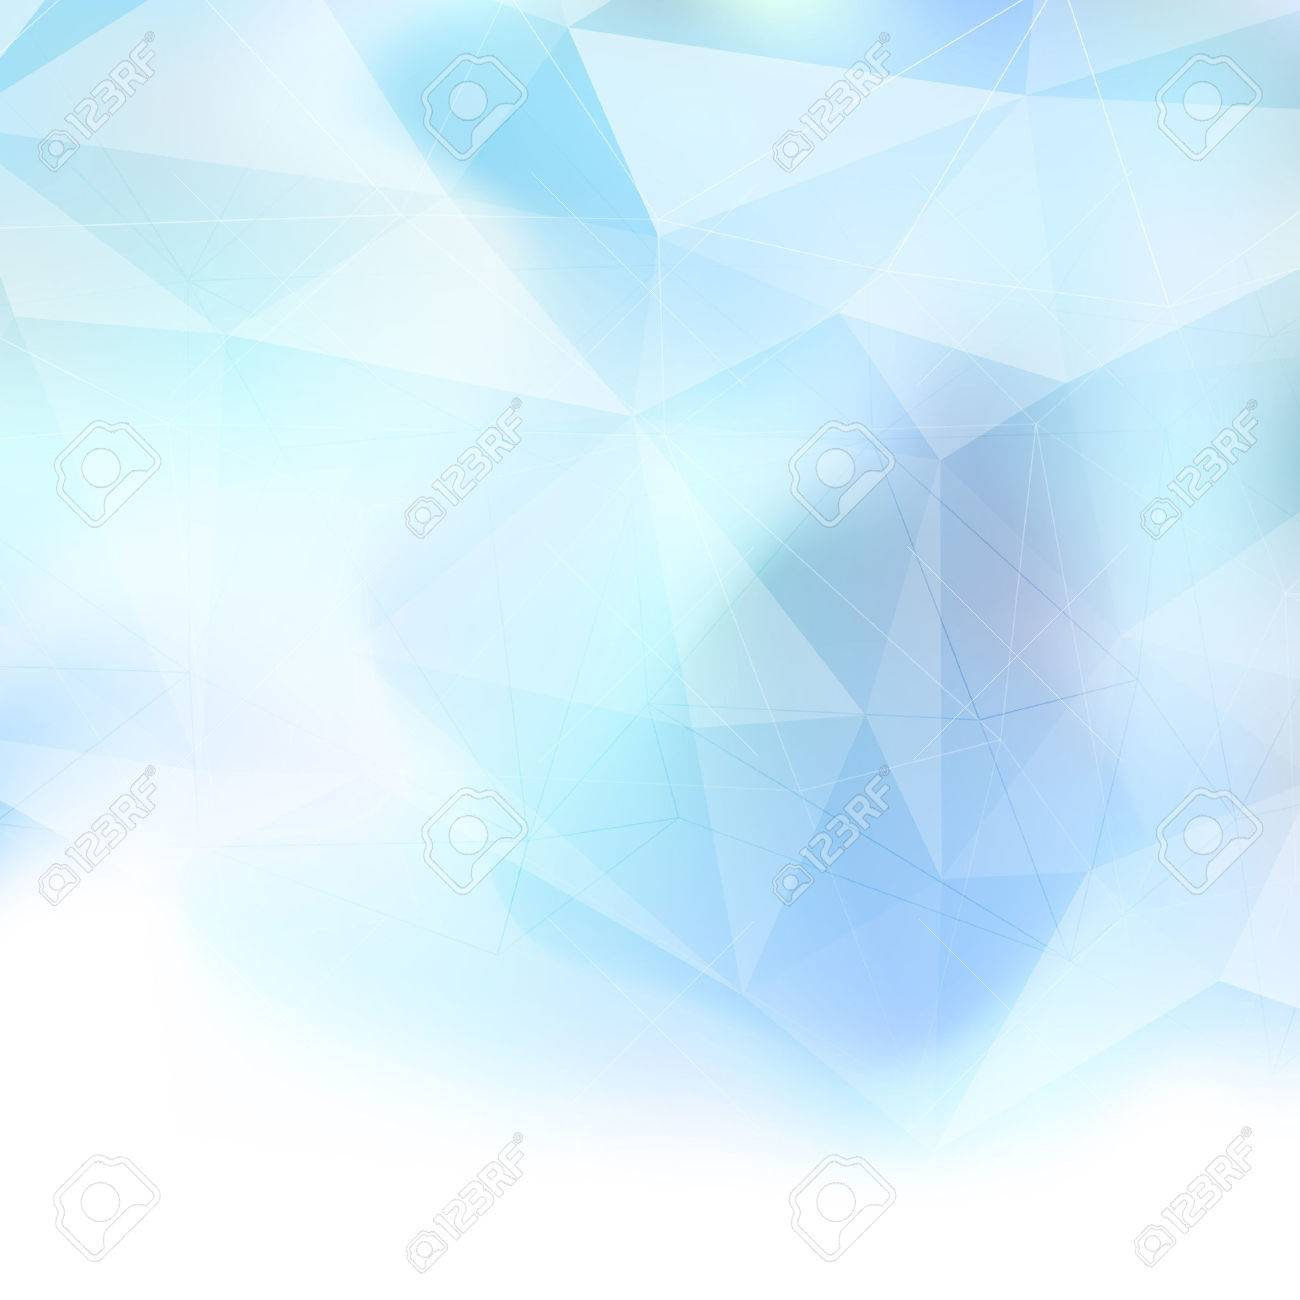 abstract crystal structure background template royalty free cliparts